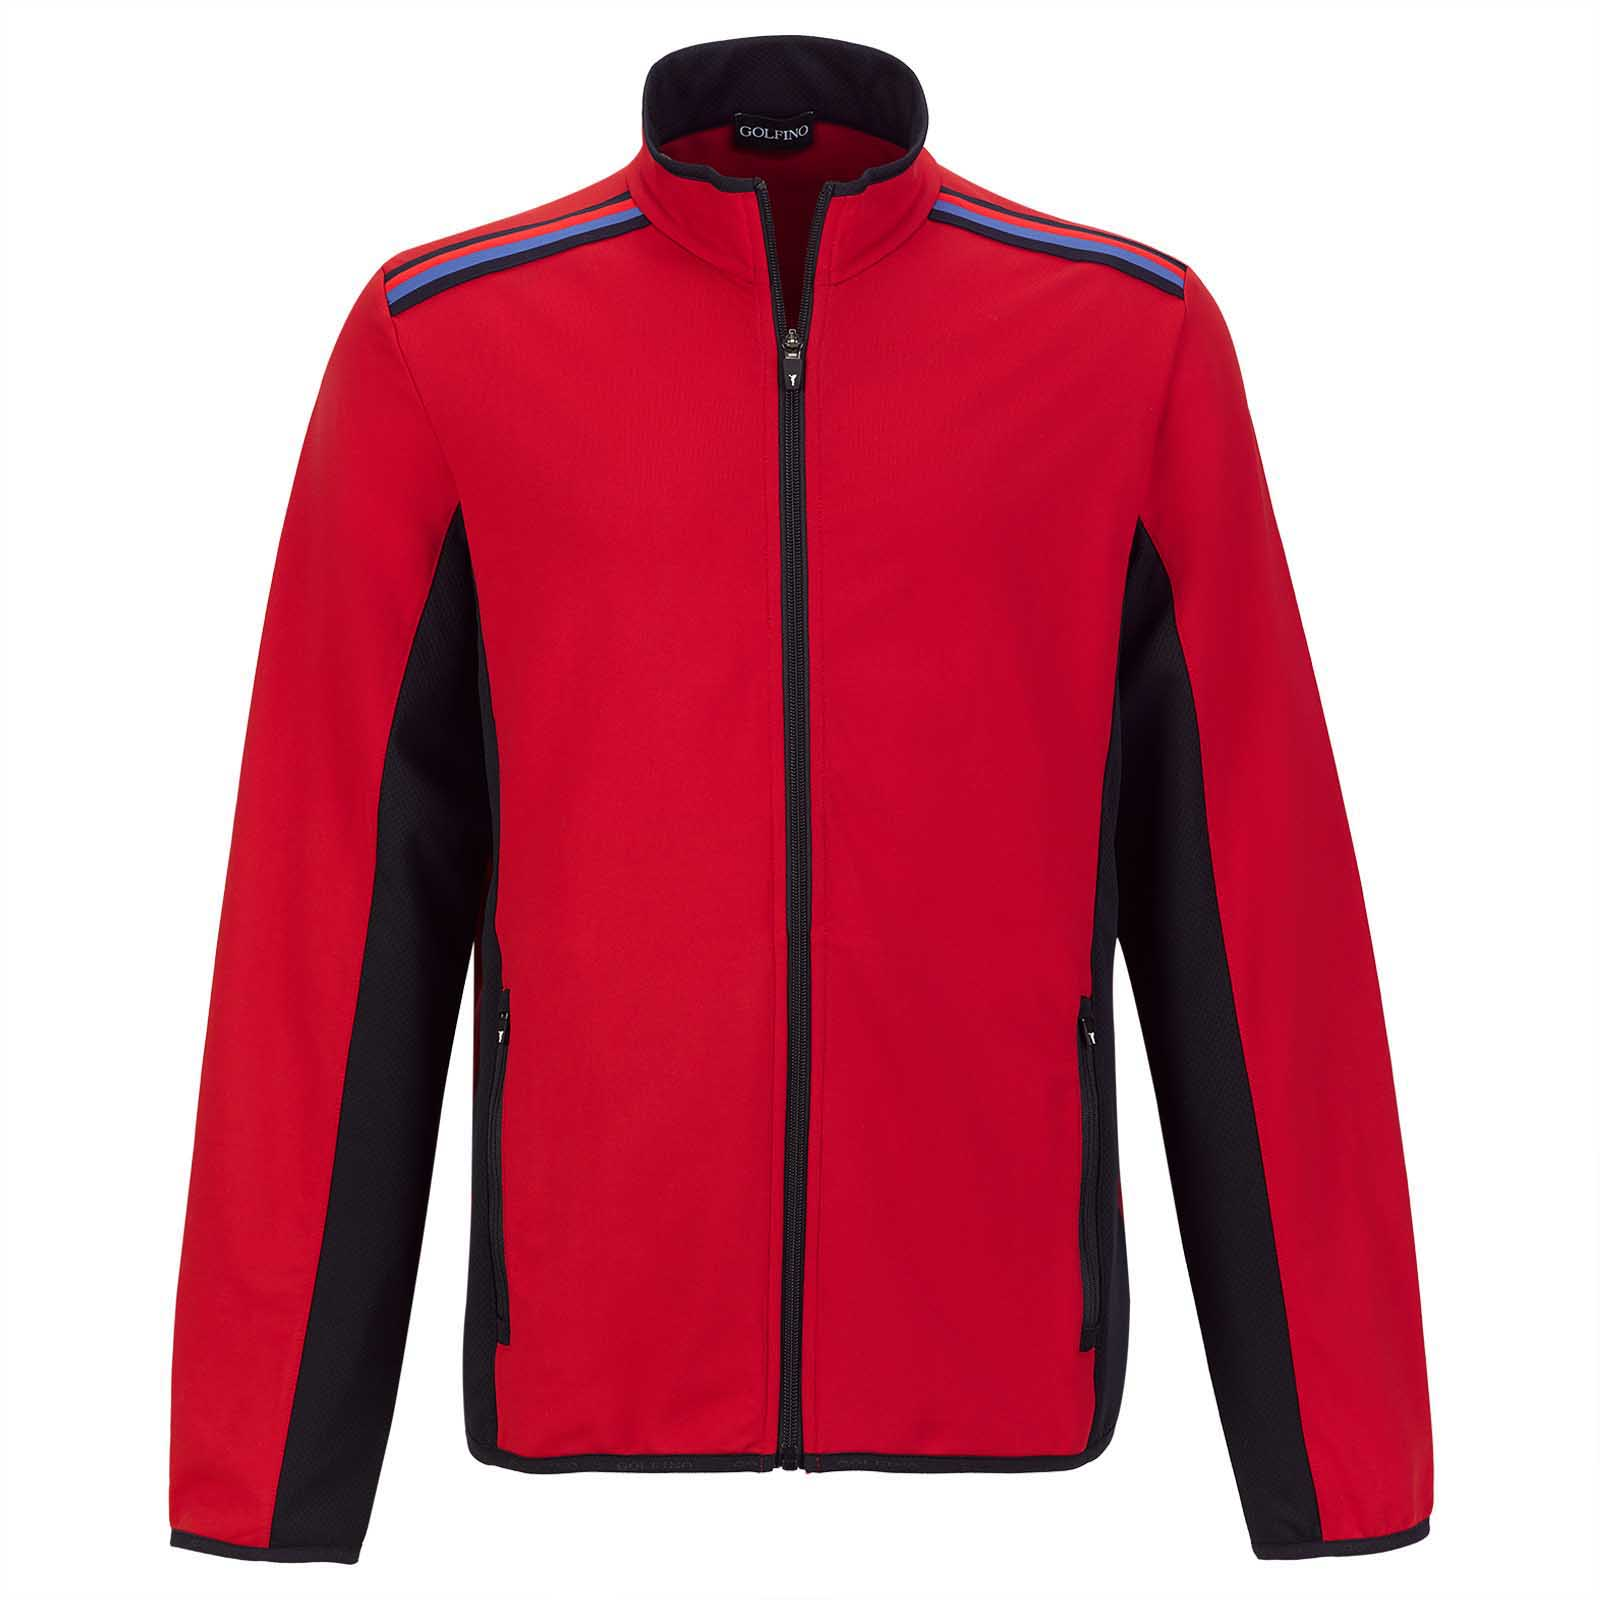 Men's comfort golf jacket with Moisture Management